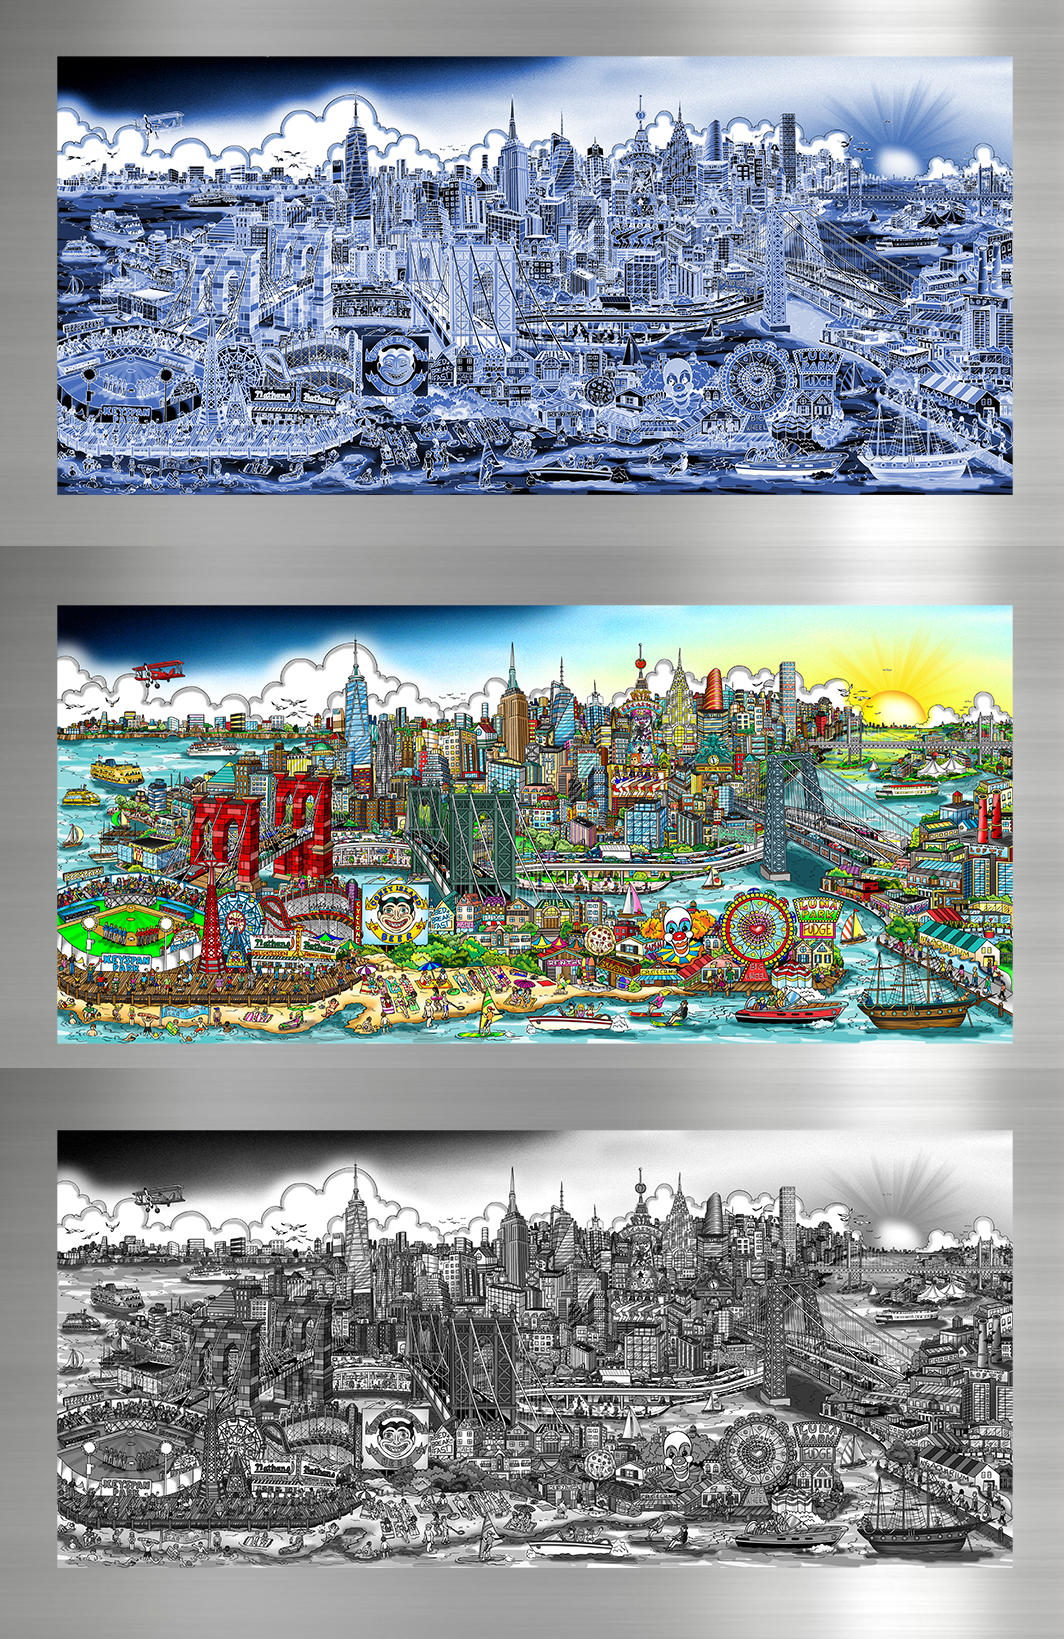 New York City pop art landscape with a Coney Island beach scene- A Day at the Beach by Charles Fazzino in full color, monochromatic electric blue, black and white